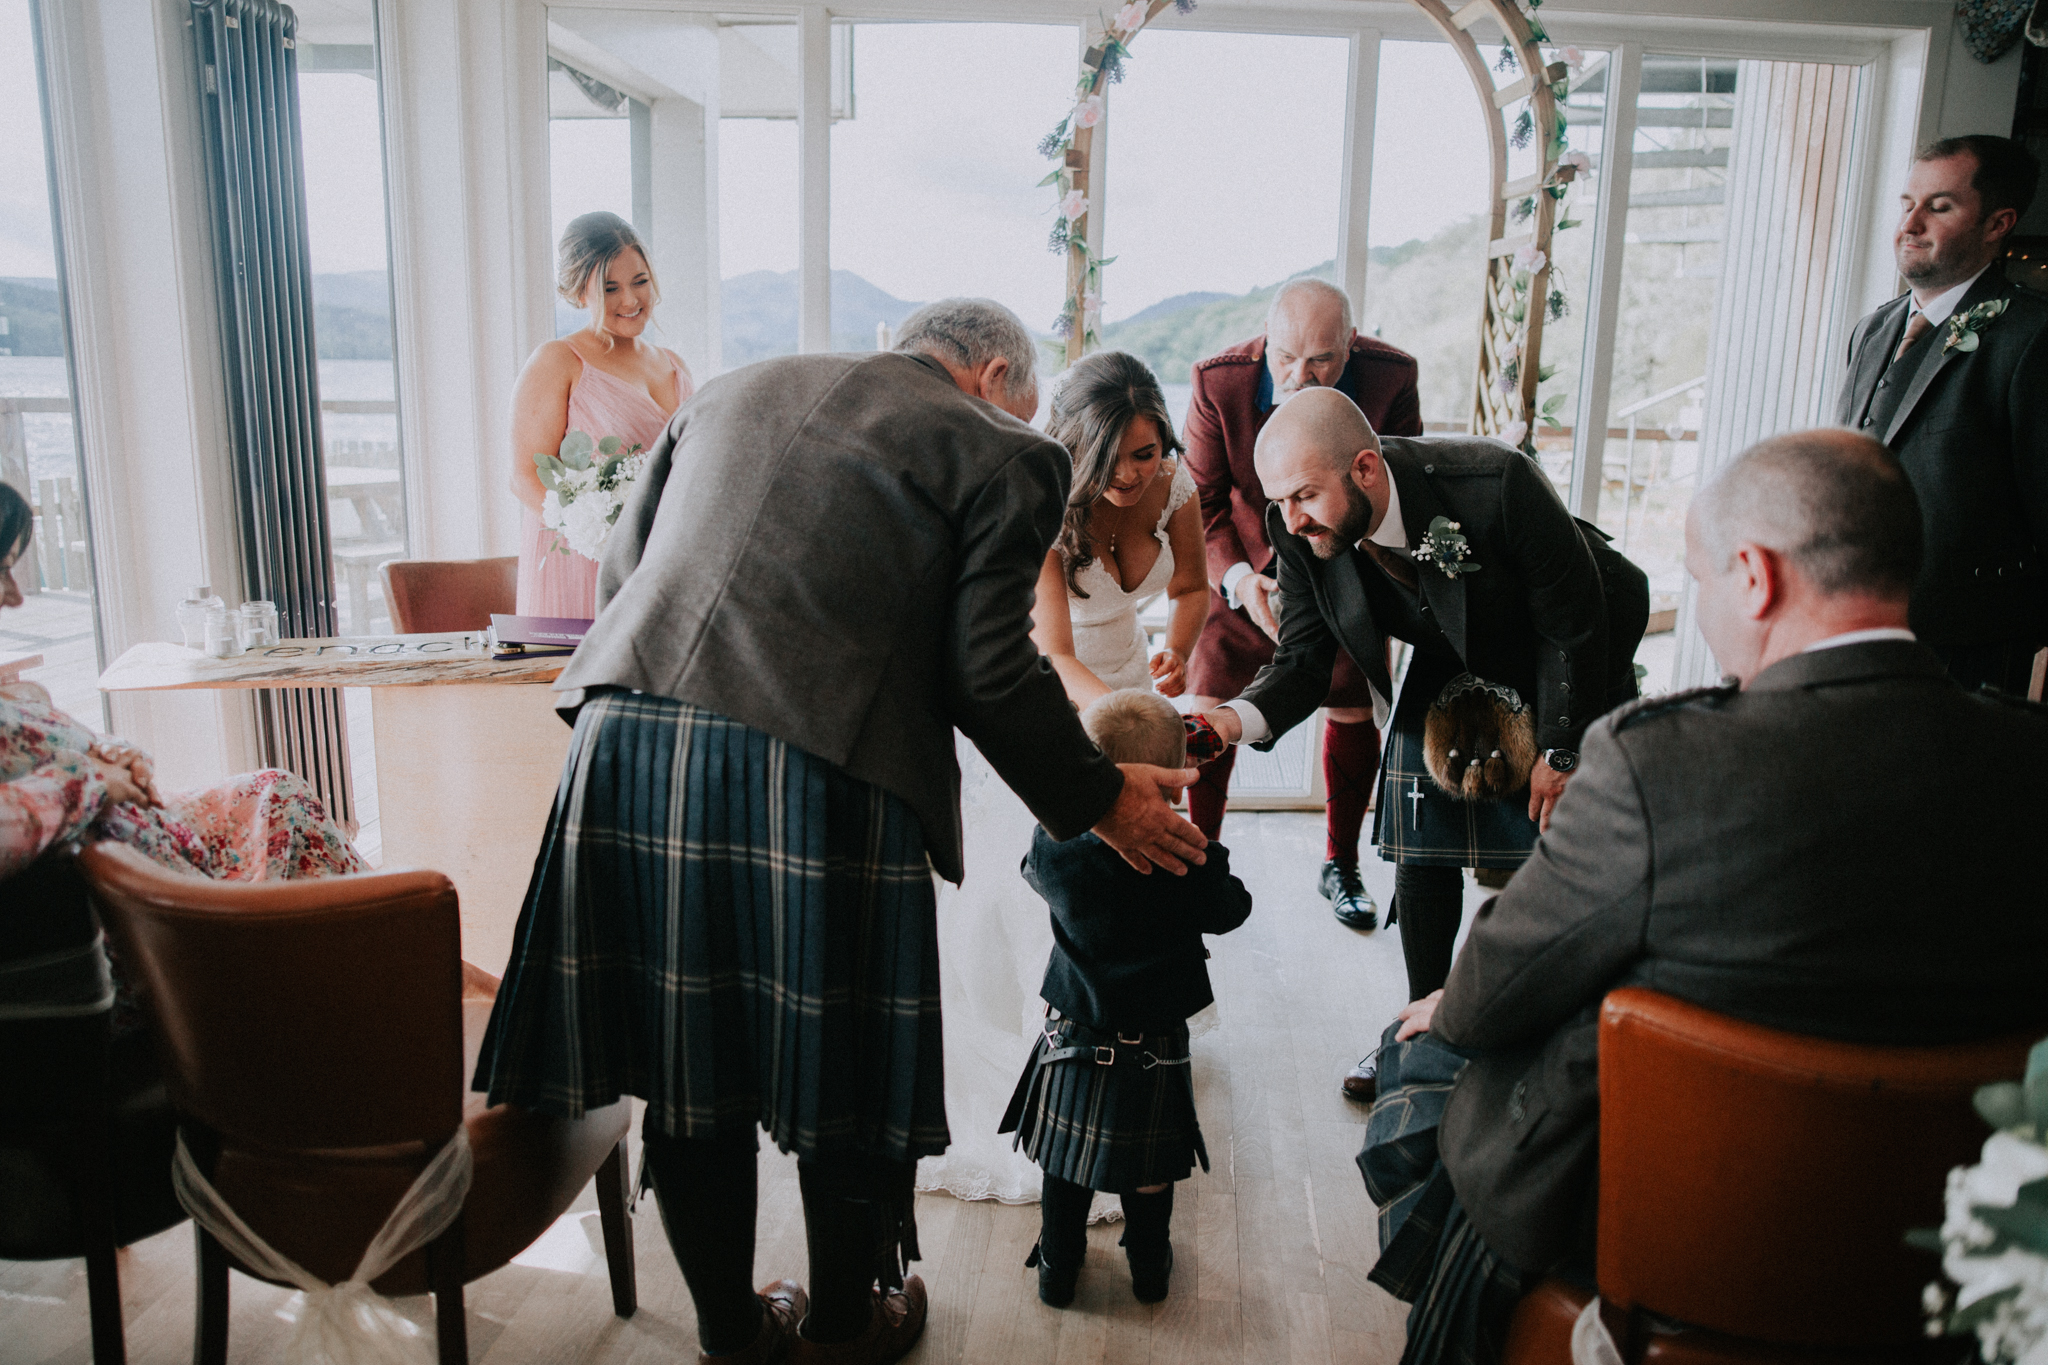 The wedding ceremony at the Venachar Lochside